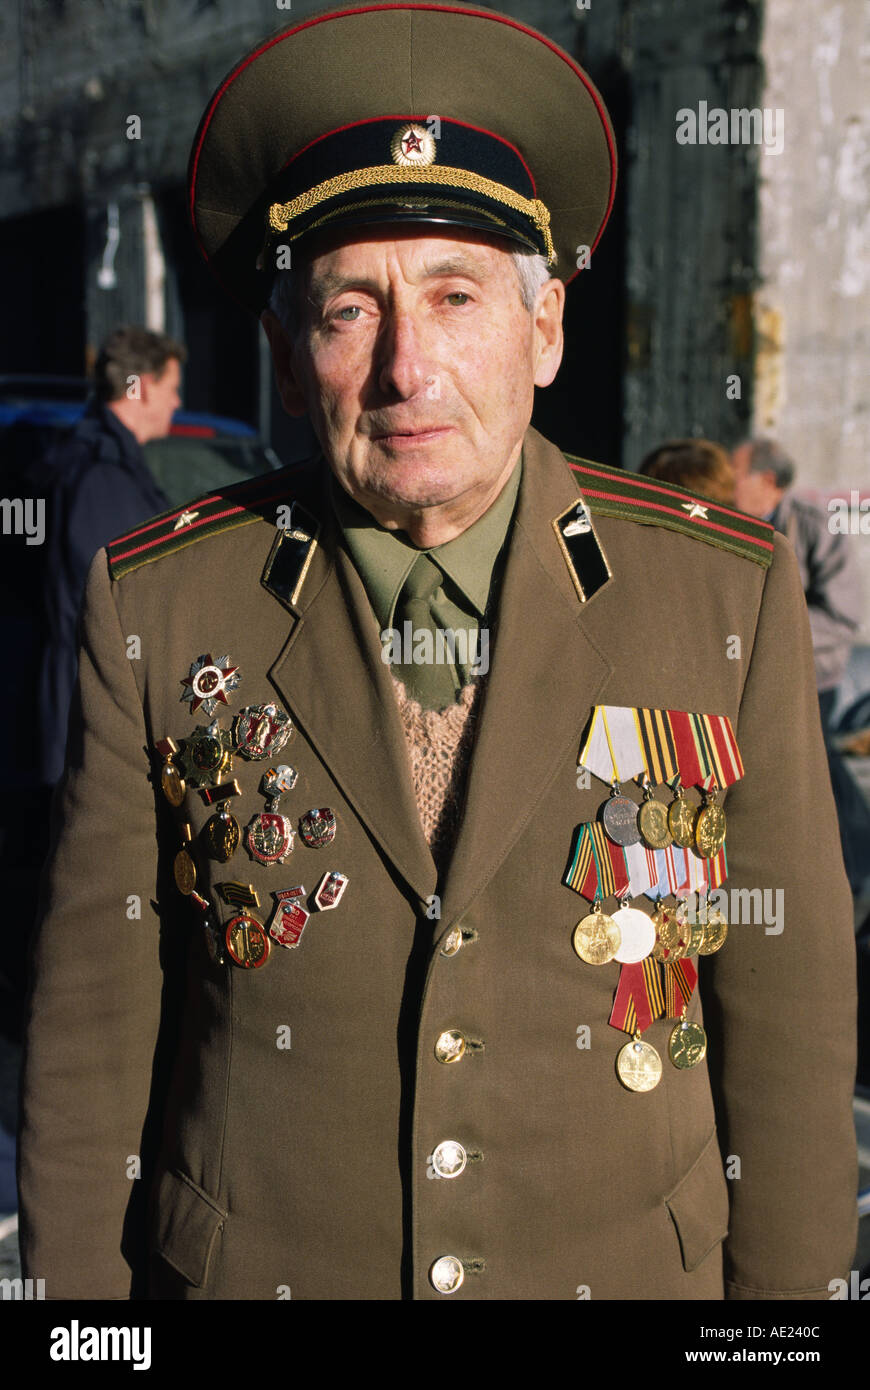 Soviet Medals Stock Photos Amp Soviet Medals Stock Images